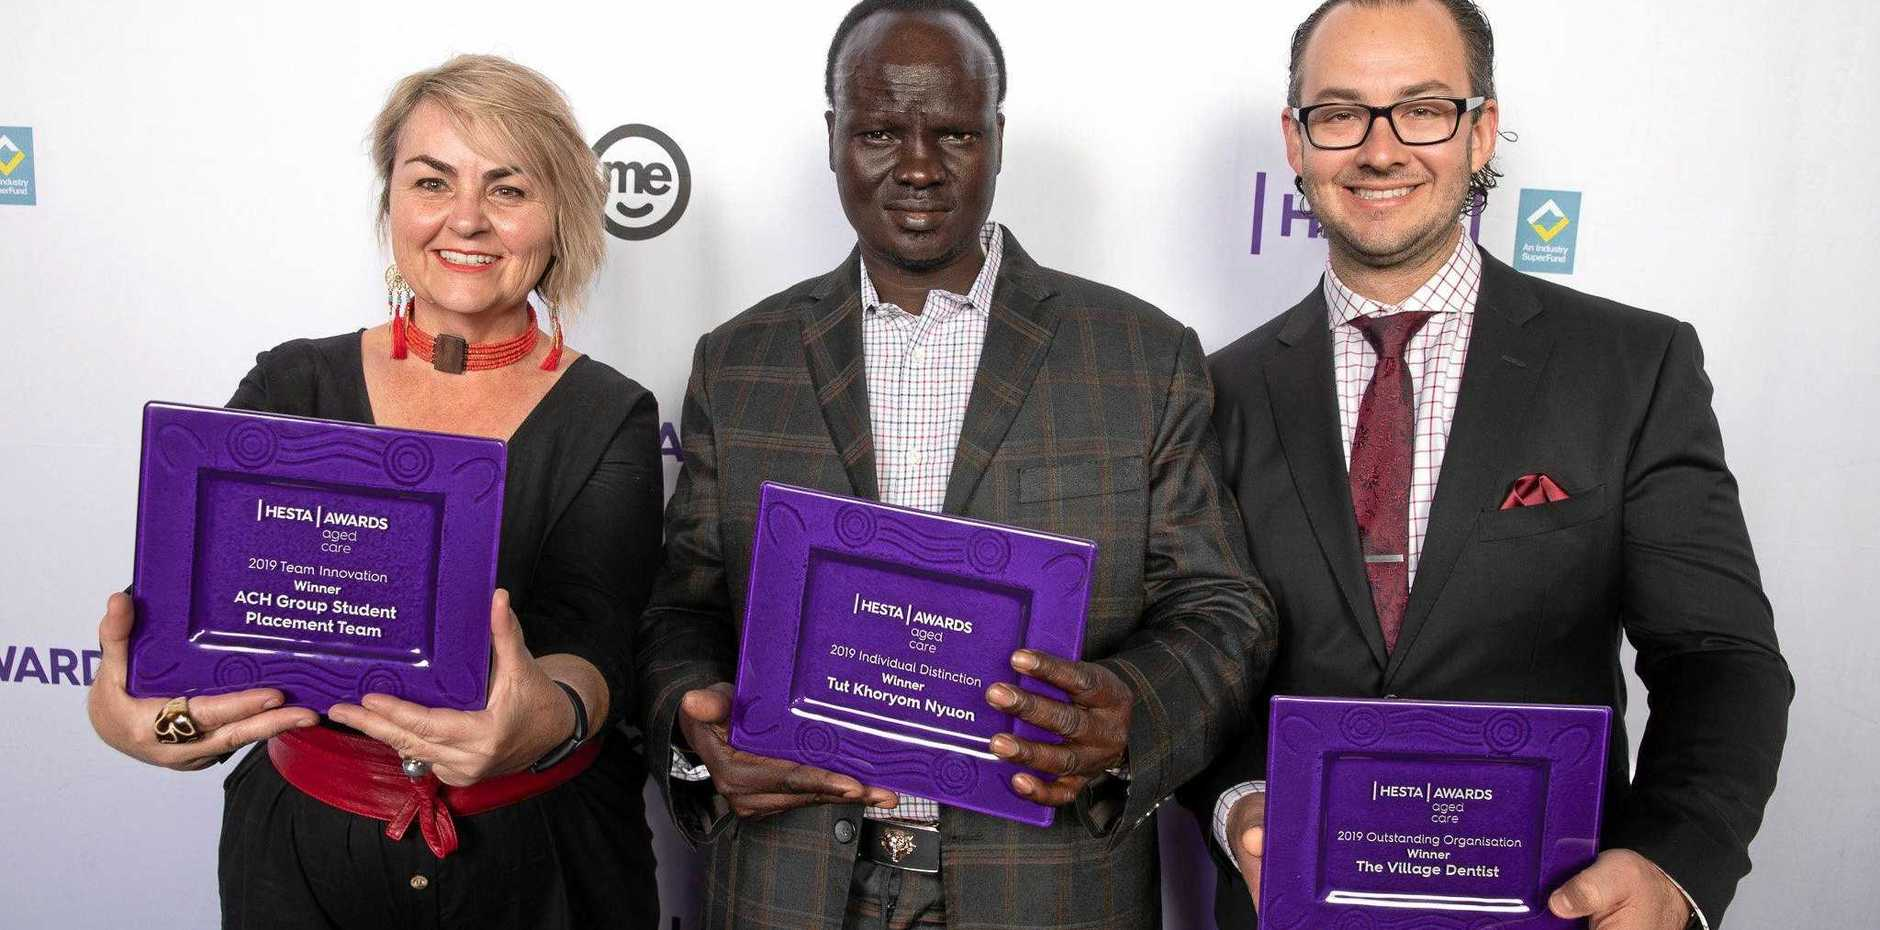 HESTA AGED CARE AWARD WINNERS: Samantha Manoe (ACH Group Manager of the Student Placement Team), Tut Khoryom Nyuon (Personal Care Assistant, Fronditha Care), Oliver Cvekus (Director of The Village Dentist).